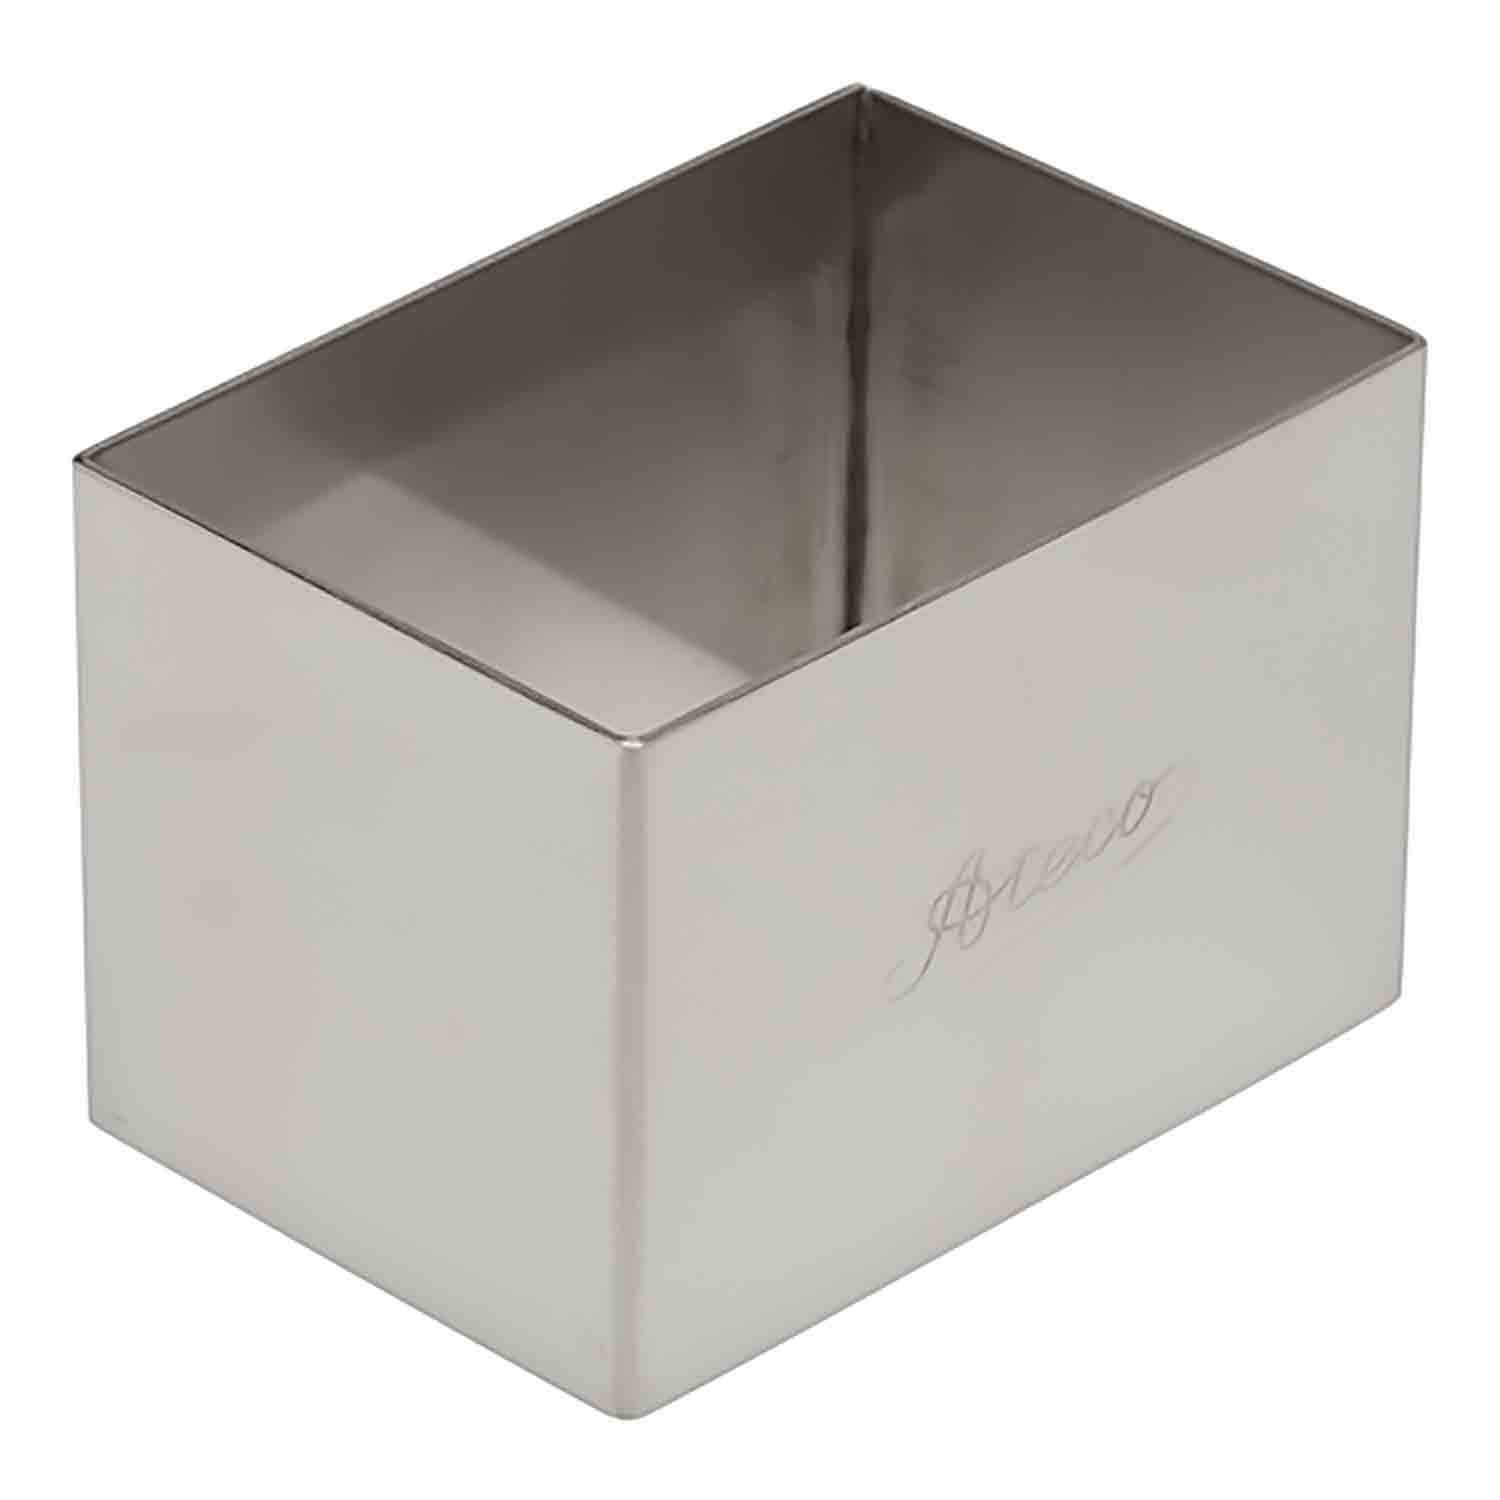 Country Kitchen Fort Wayne: Stainless Steel Rectangle Cookie Cutter